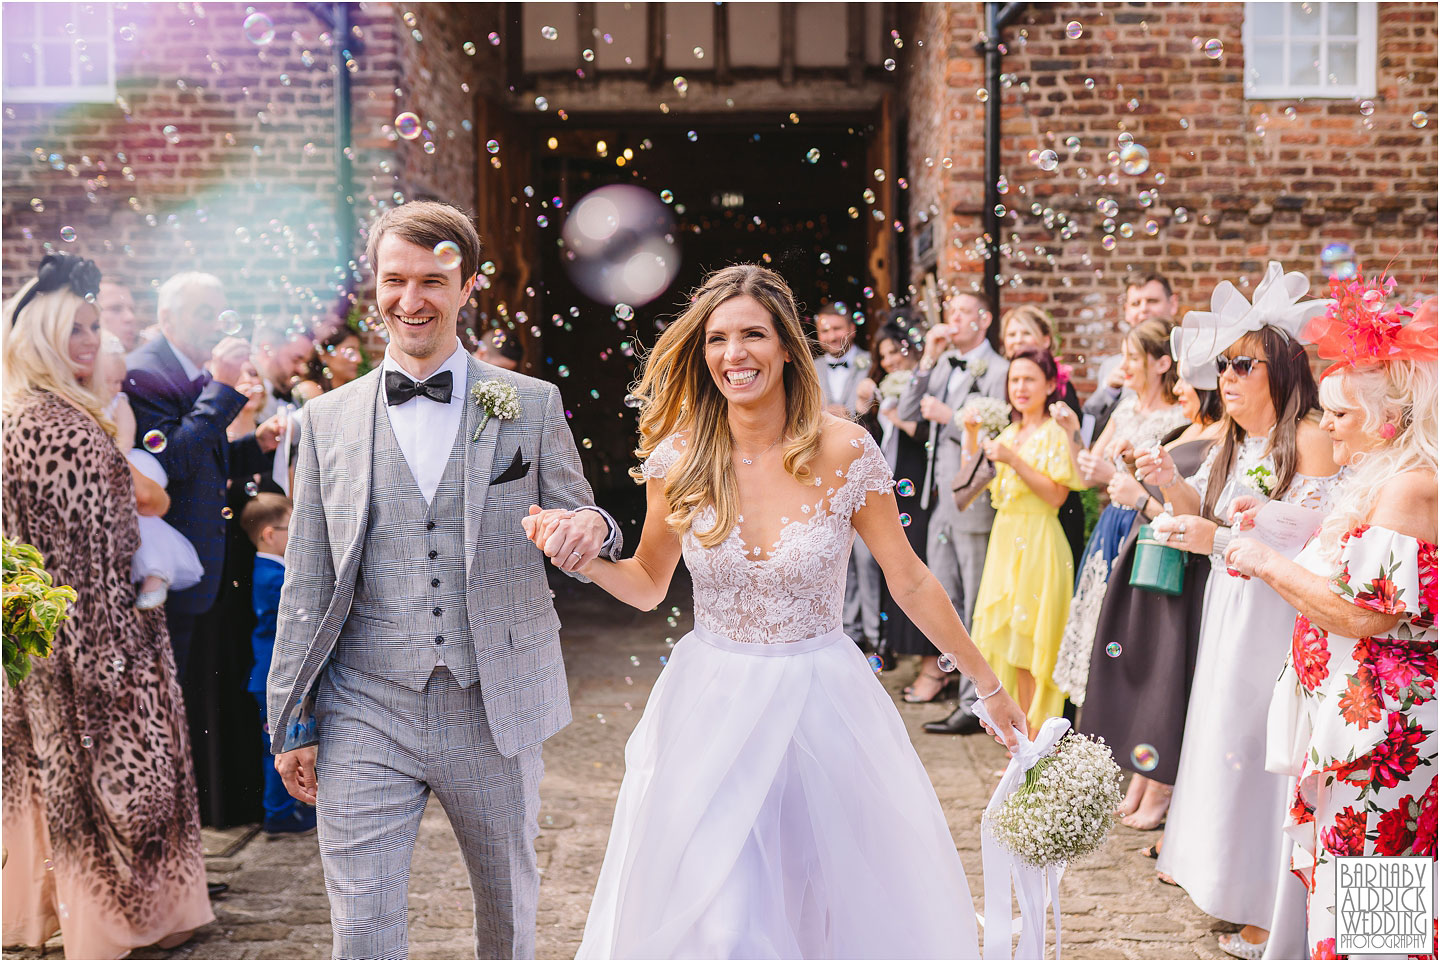 Bubble confetti at Meols Hall, Bubblefetti photo, civil wedding ceremony Merseyside, Meols Hall Wedding photography, Meols Hall Churchtown wedding, Southport wedding photographer, Merseyside Wedding,